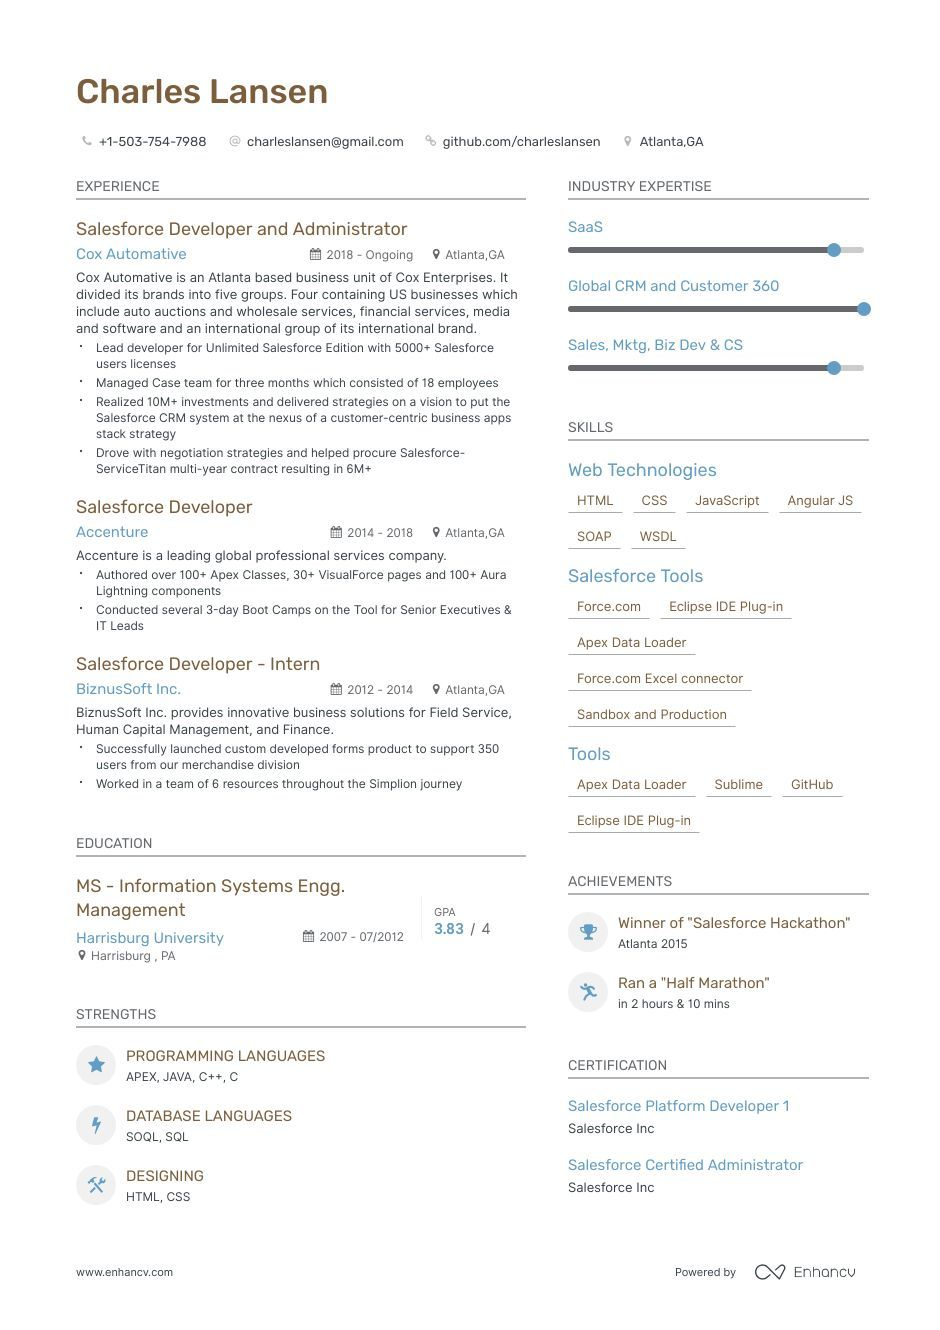 Salesforce Developer Resume Samples And Writing Guide For 2020